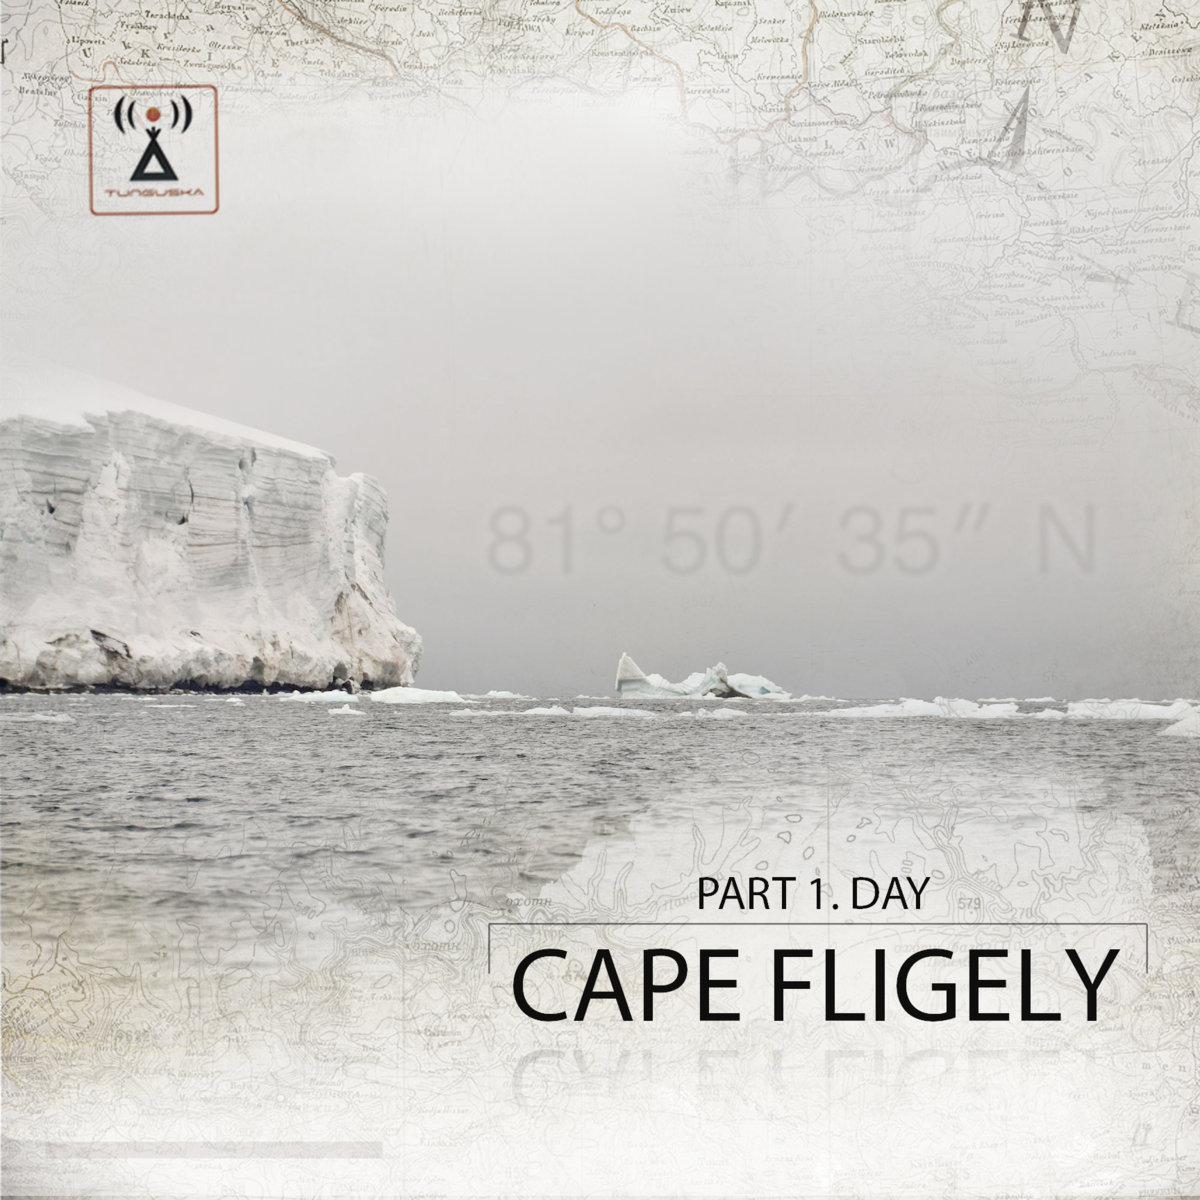 Paul Minesweeper - Frost Flower @ 'Point - Cape Fligely. Part 1. Day' album (electronic, ambient)